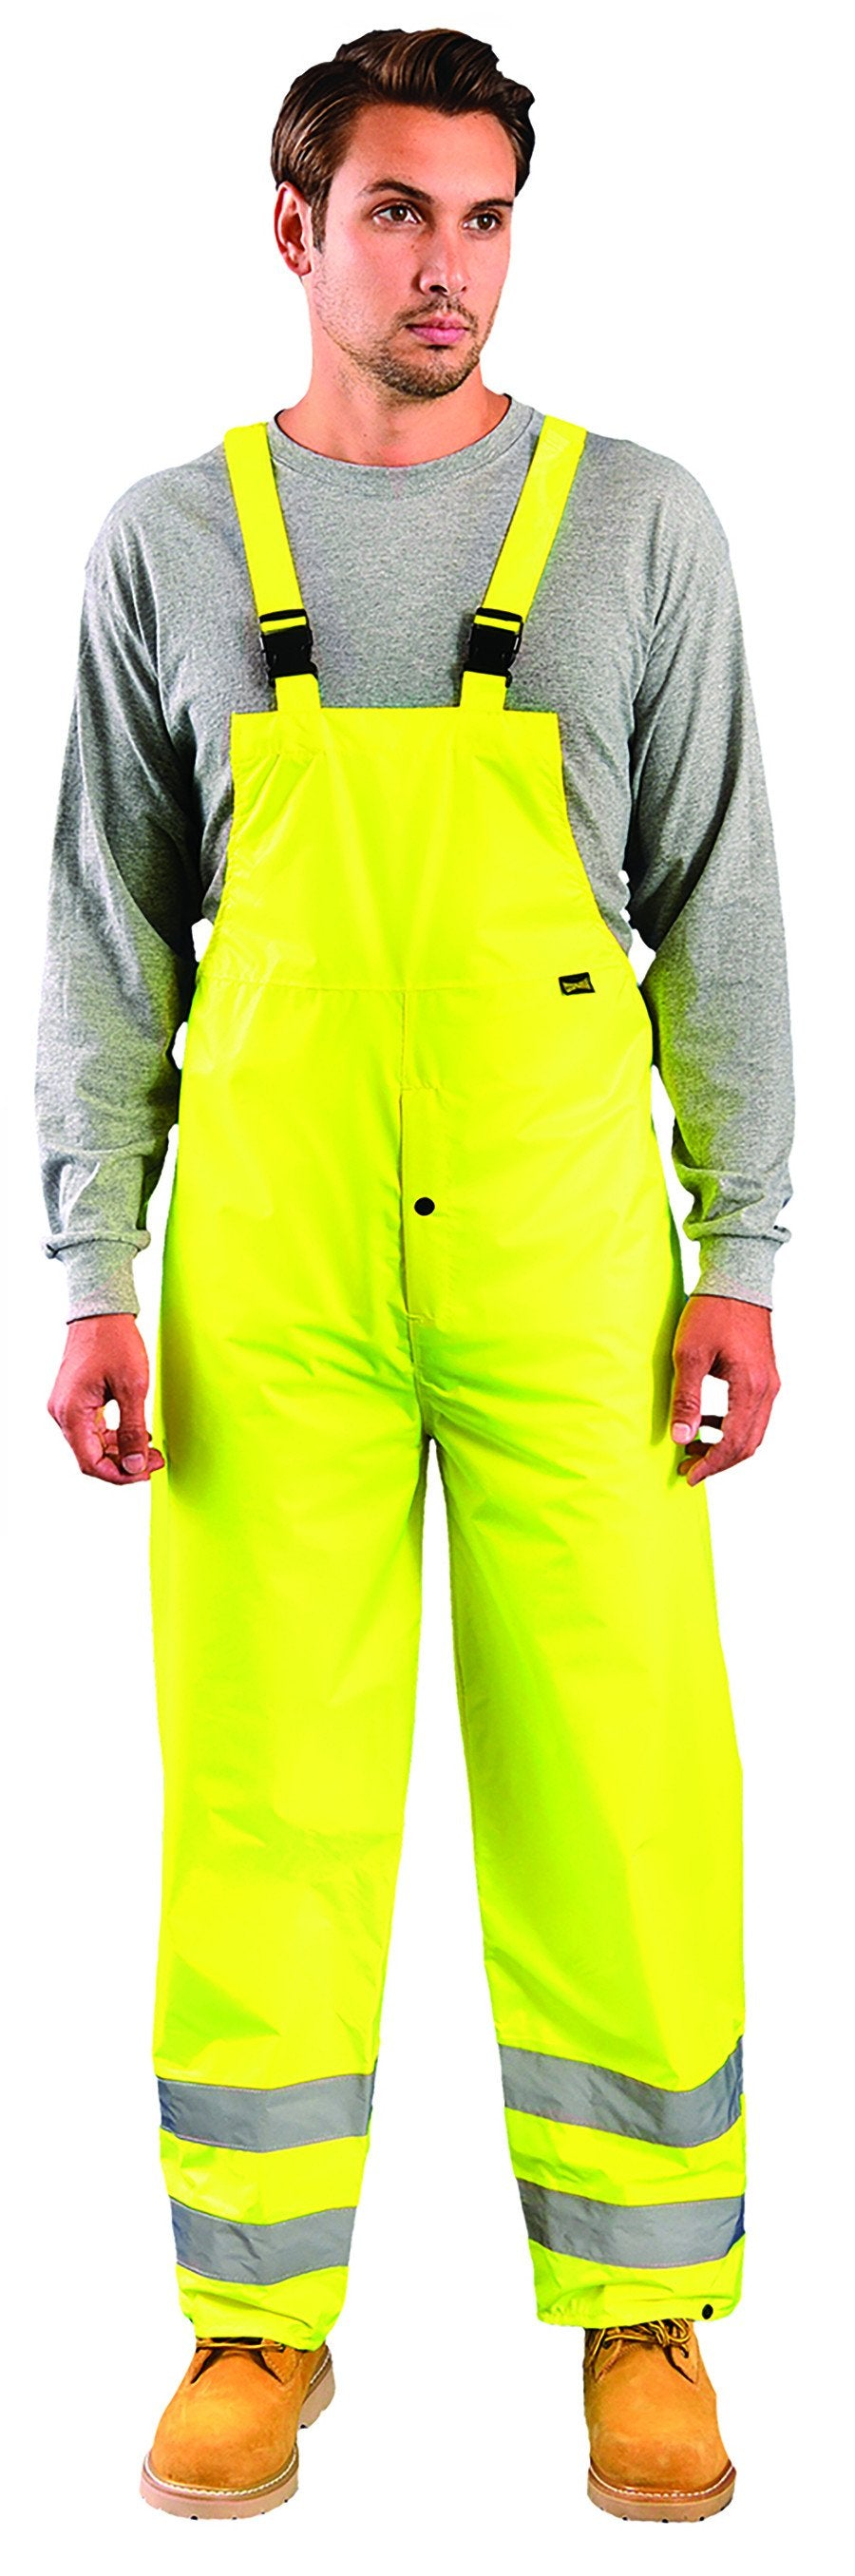 Premium Breathable Jacket - 2XL / Fluorescent Orange